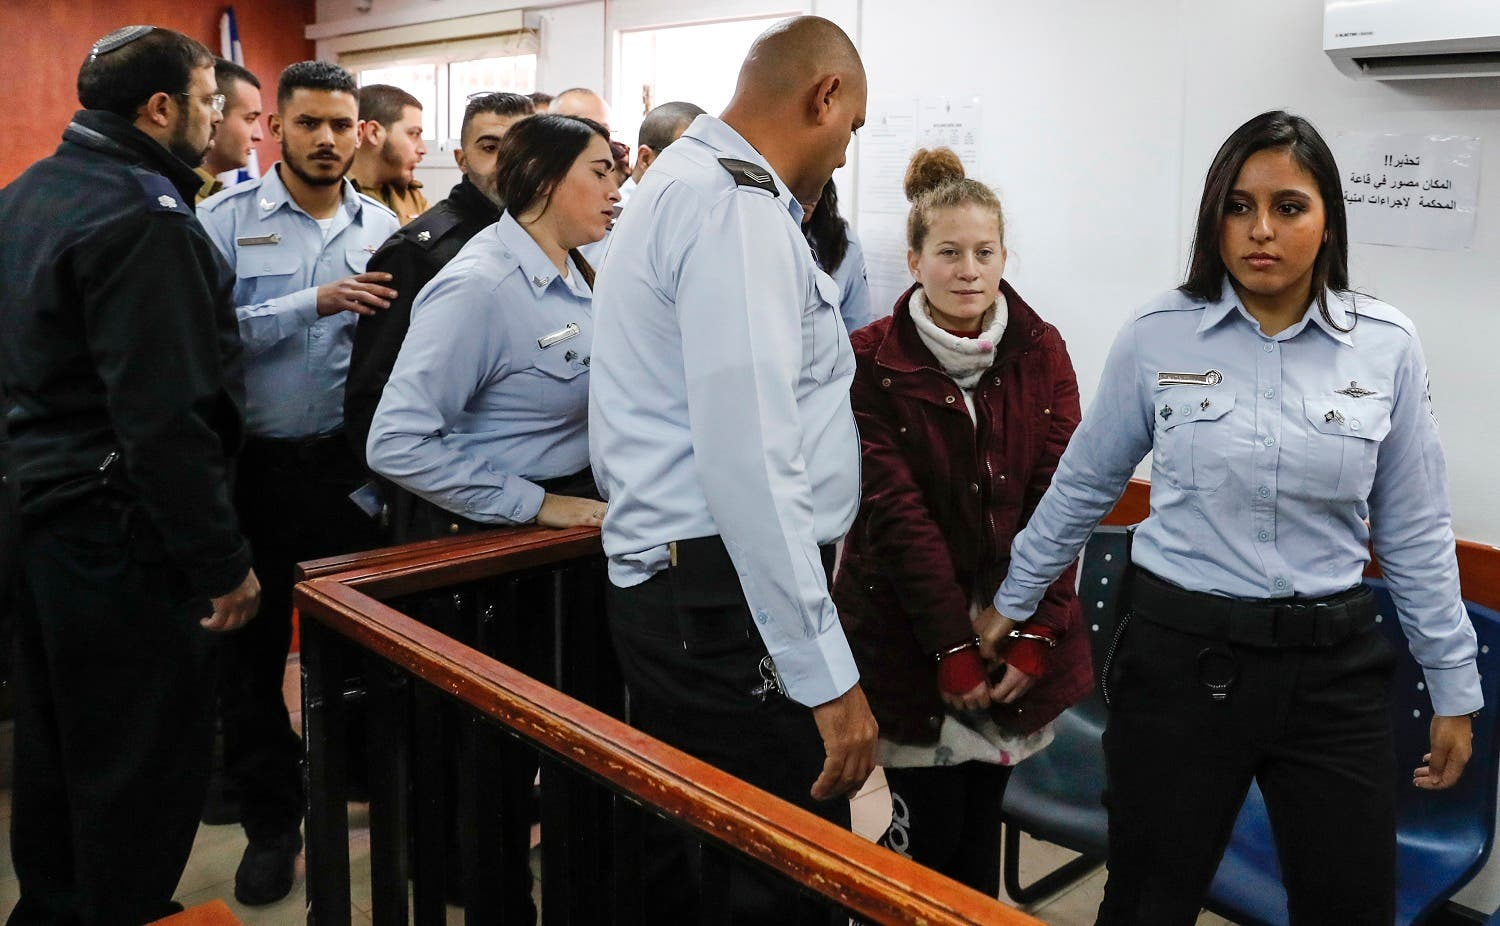 Ahed Tamimi (2nd-R), a prominent 17-year-old Palestinian campaigner against Israel's occupation, appears at a military court. (AFP)